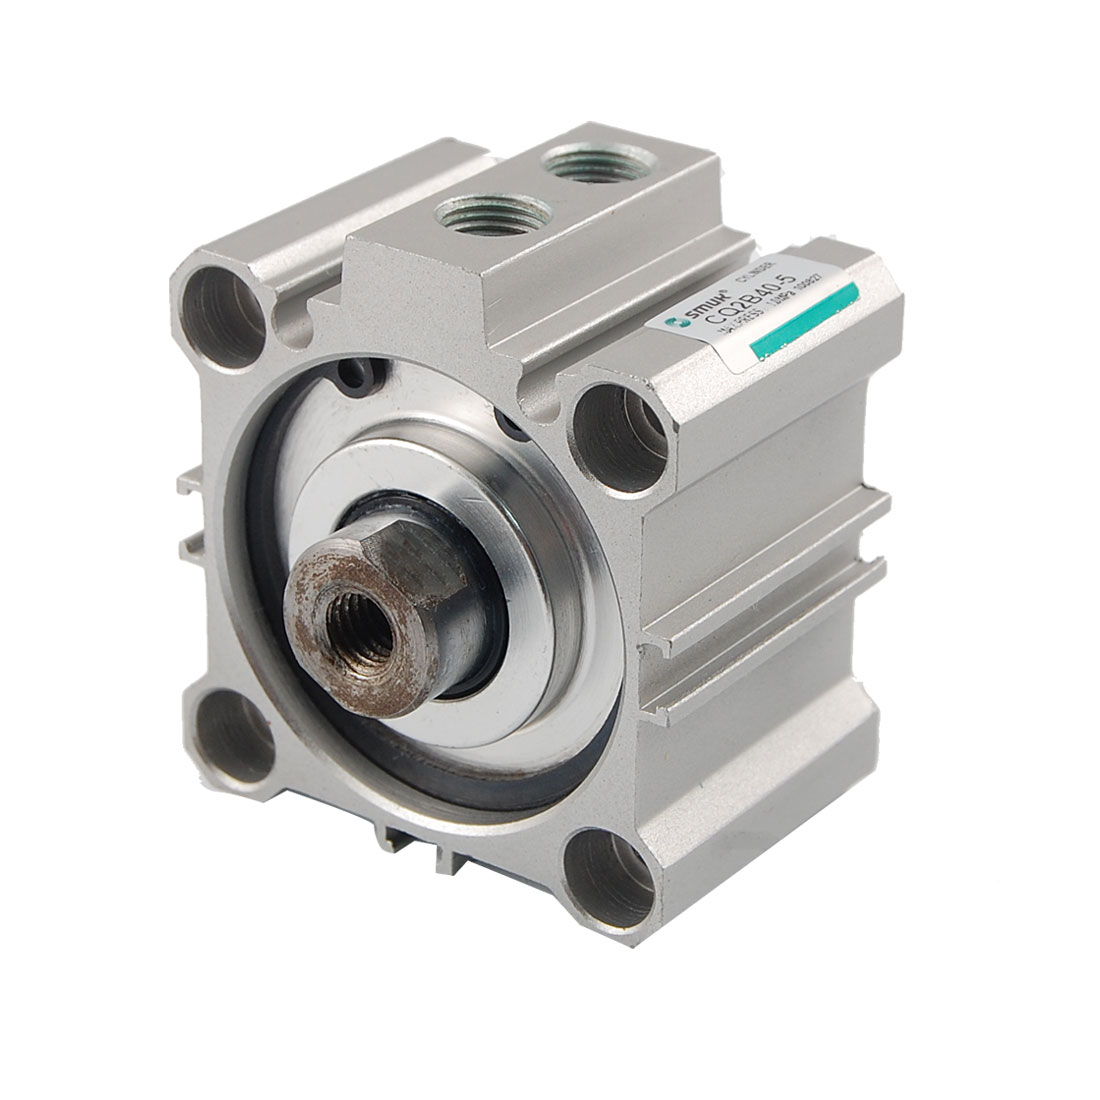 CQ2B 40mm Bore 5mm Stroke Compact Thin Pneumatic Air Cylinder